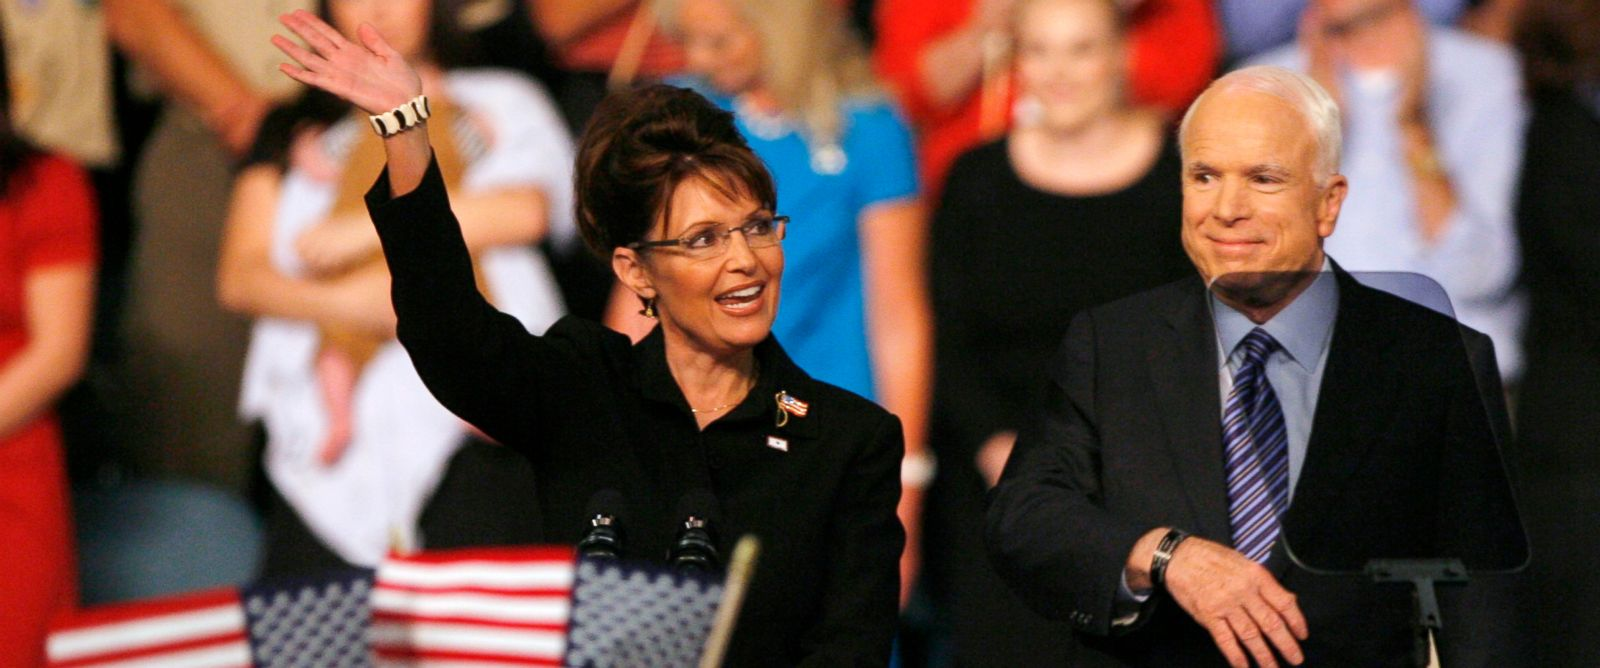 PHOTO: Senator John McCain and former Alaska Governor Sarah Palin at a campaign event in Dayton, Ohio Aug. 29, 2008.